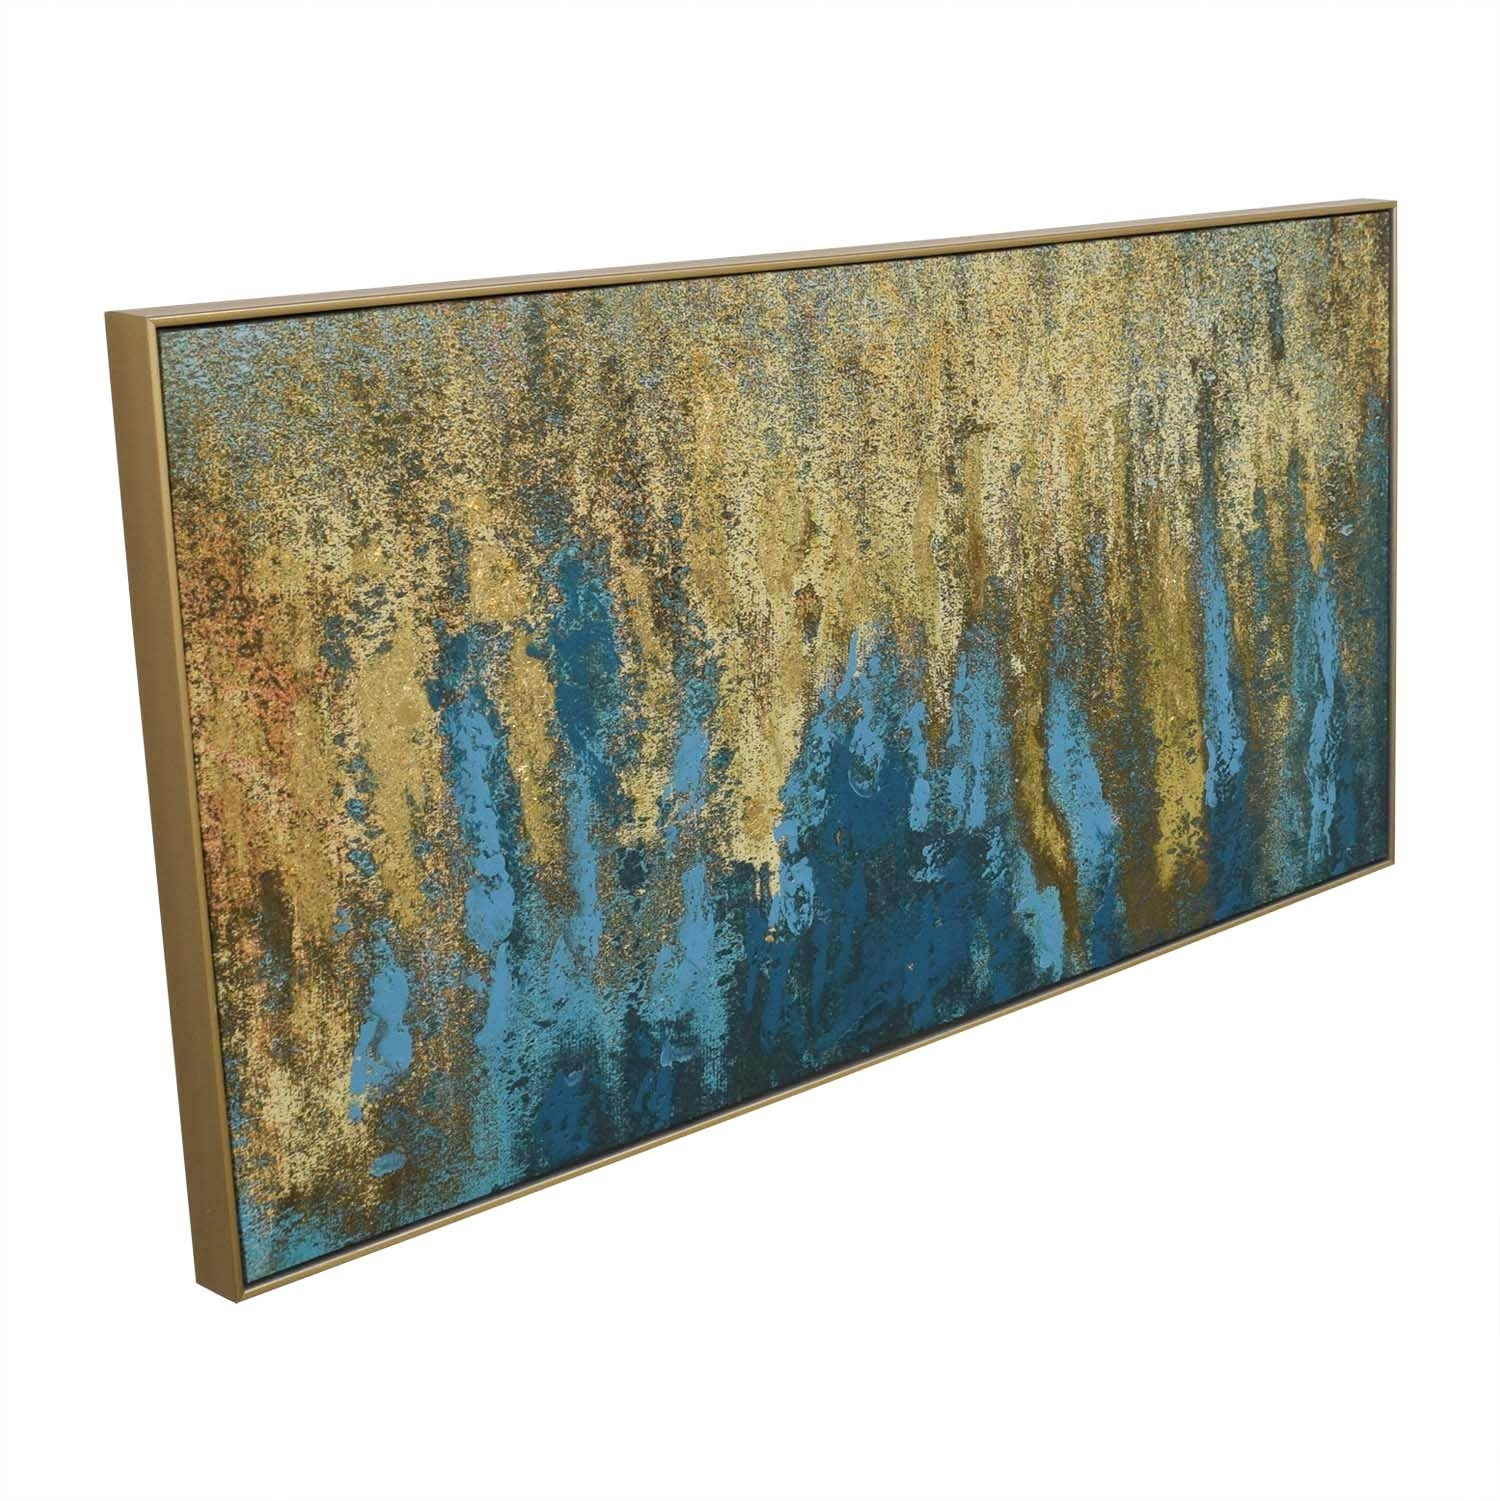 59% Off – World Market World Market Teal & Gold Wall Art In Gold With Most Up To Date World Market Wall Art (View 3 of 20)